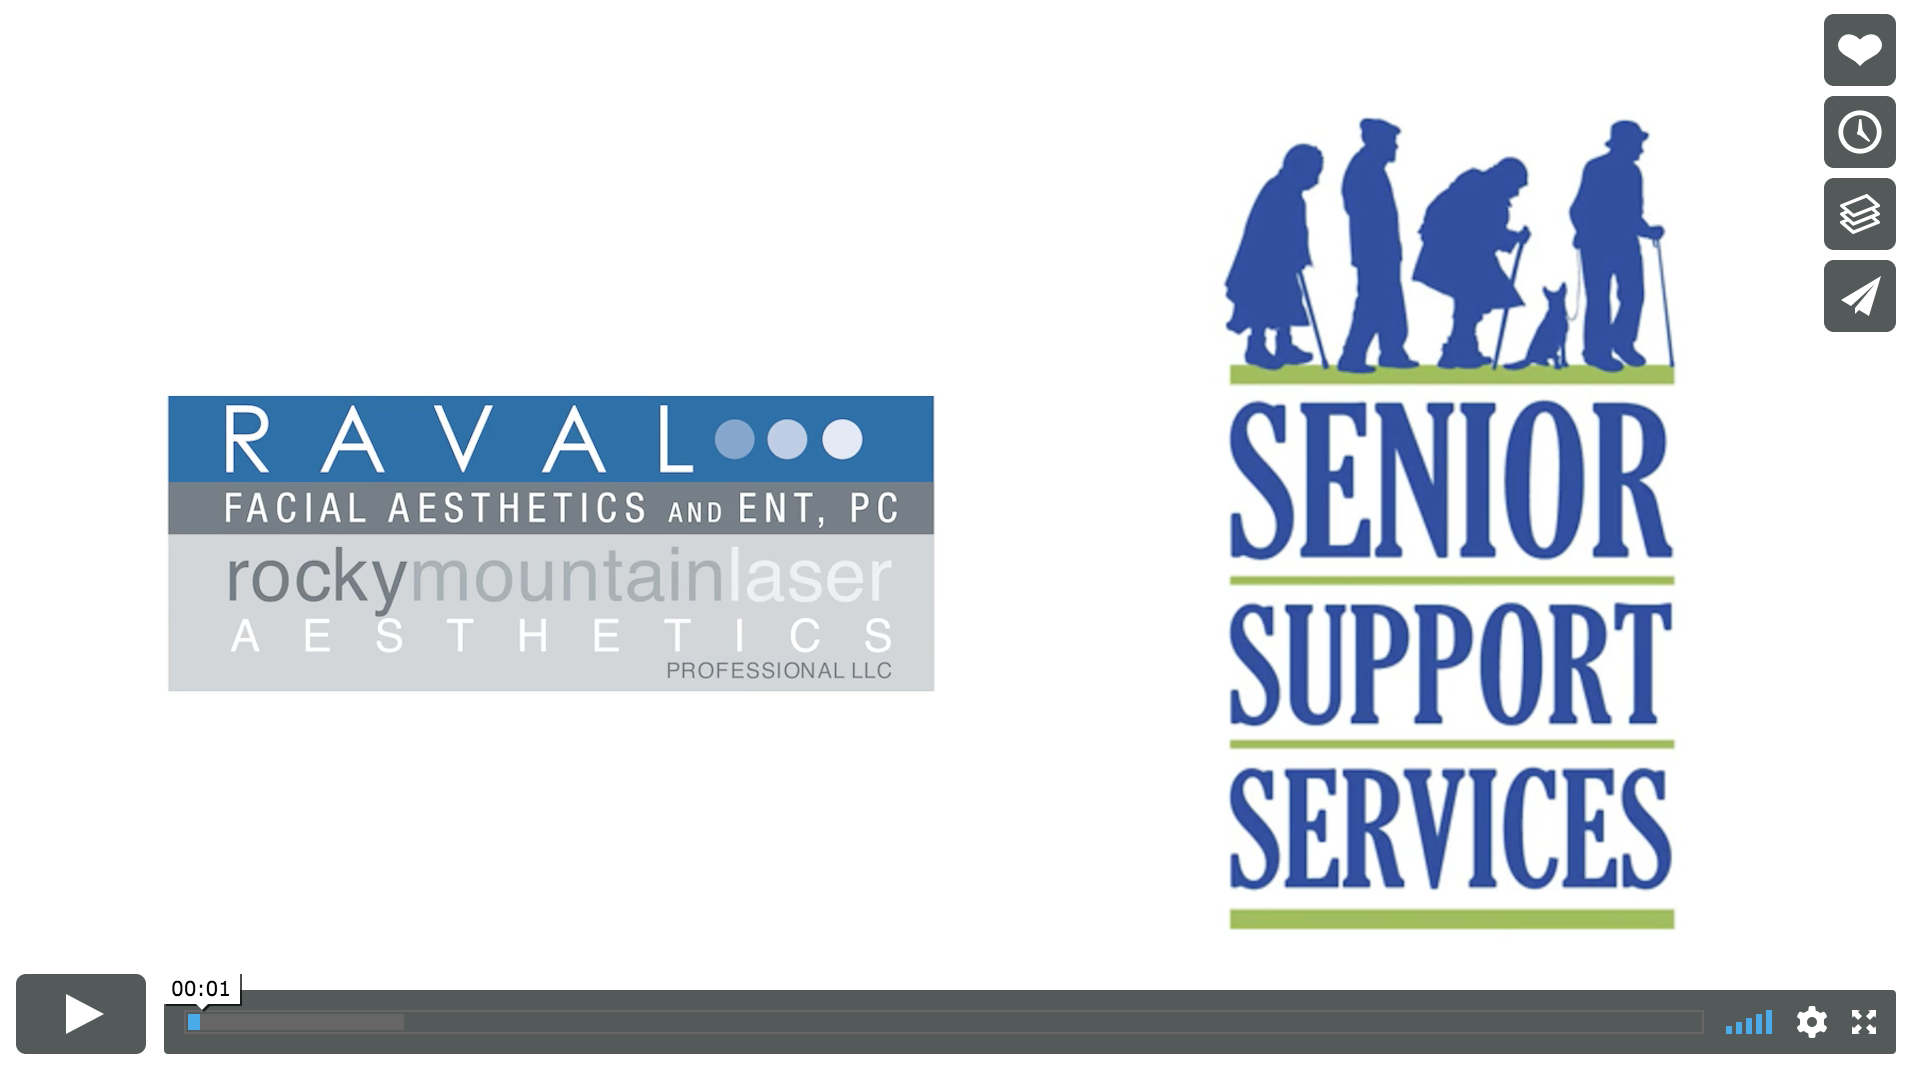 Raval and Senior Support Services